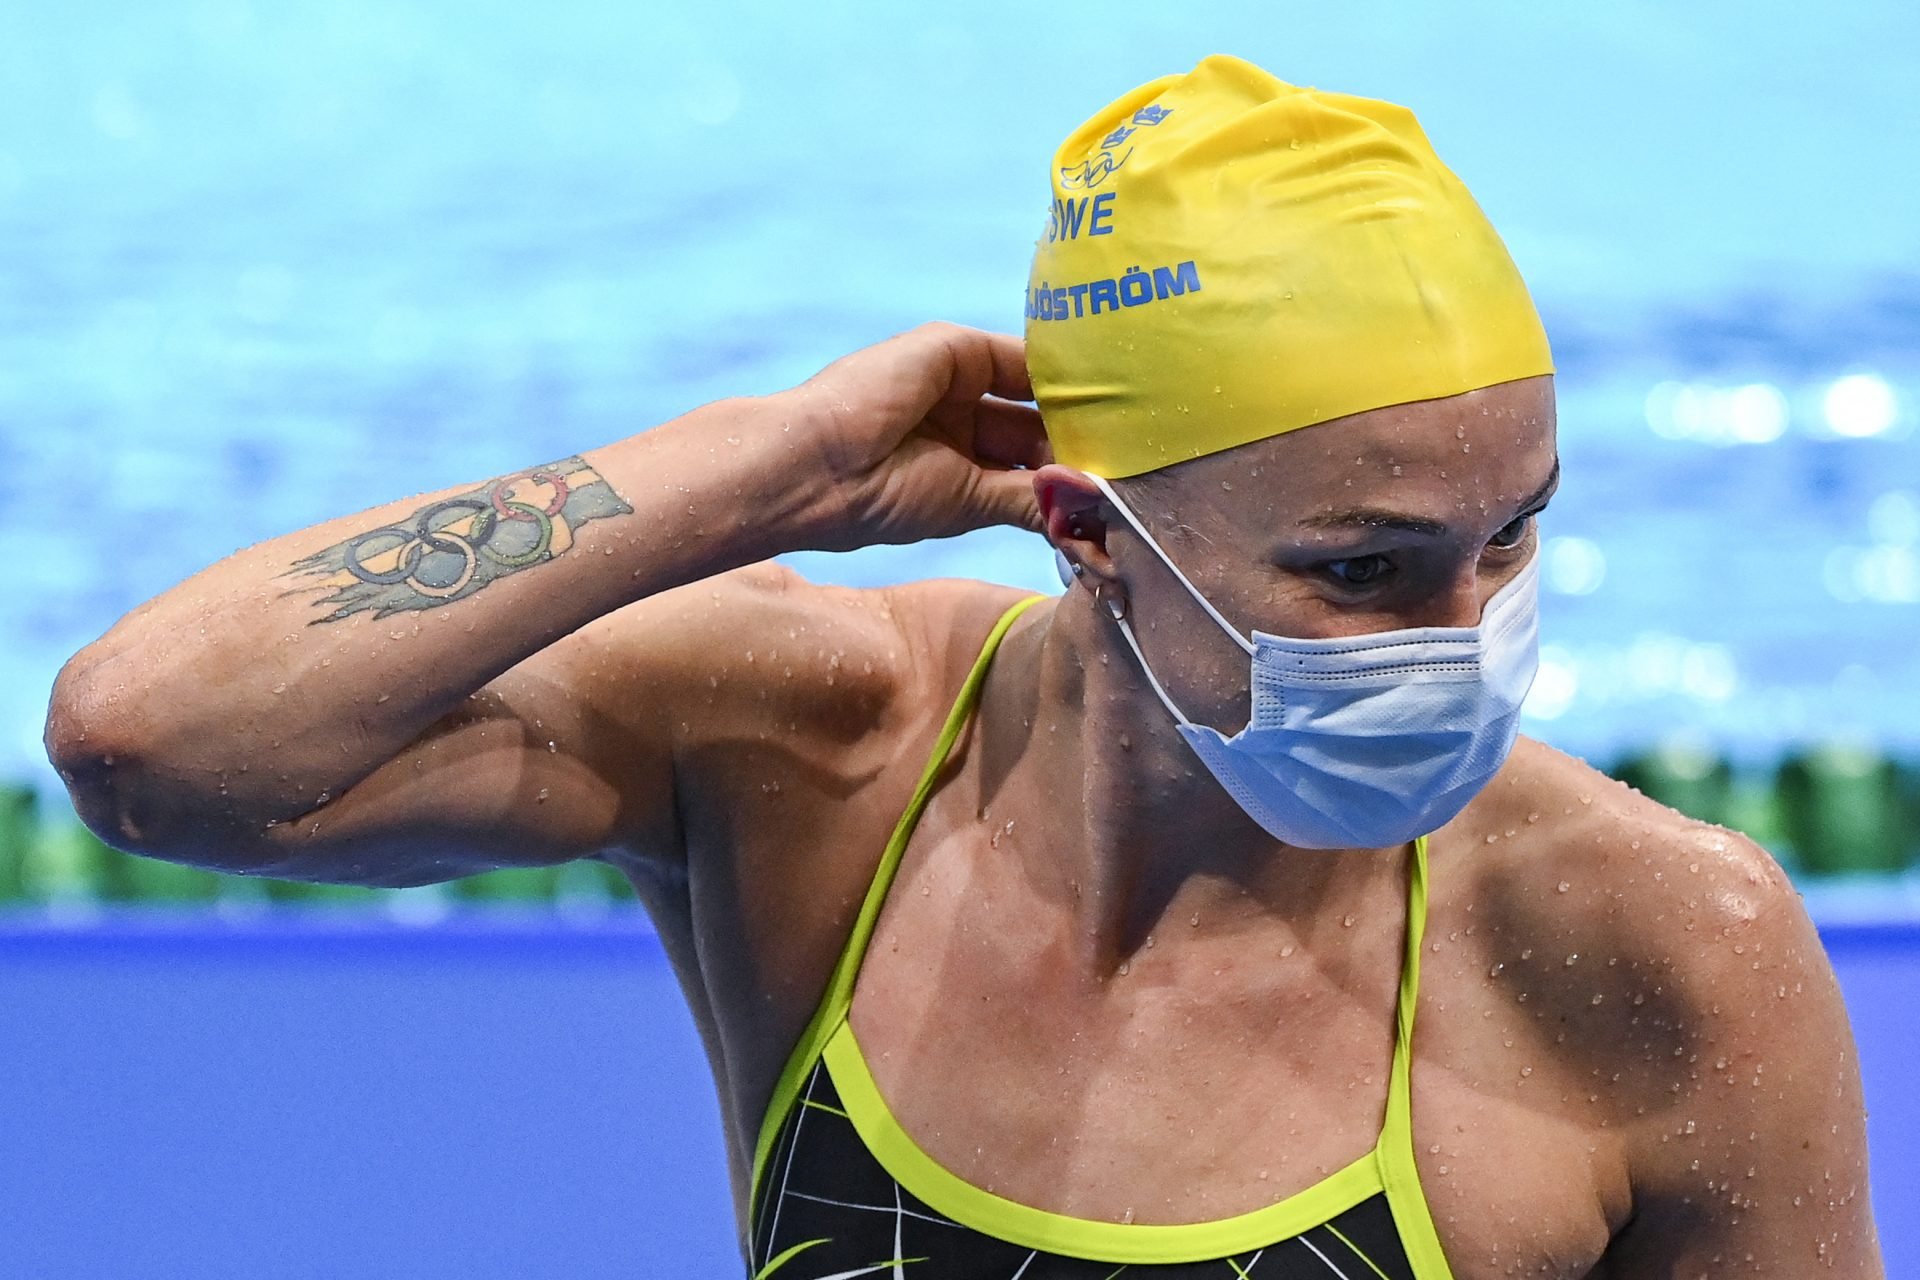 18 Athletes' Olympic dreams crushed due to Covid-19 at the Tokyo Olympics